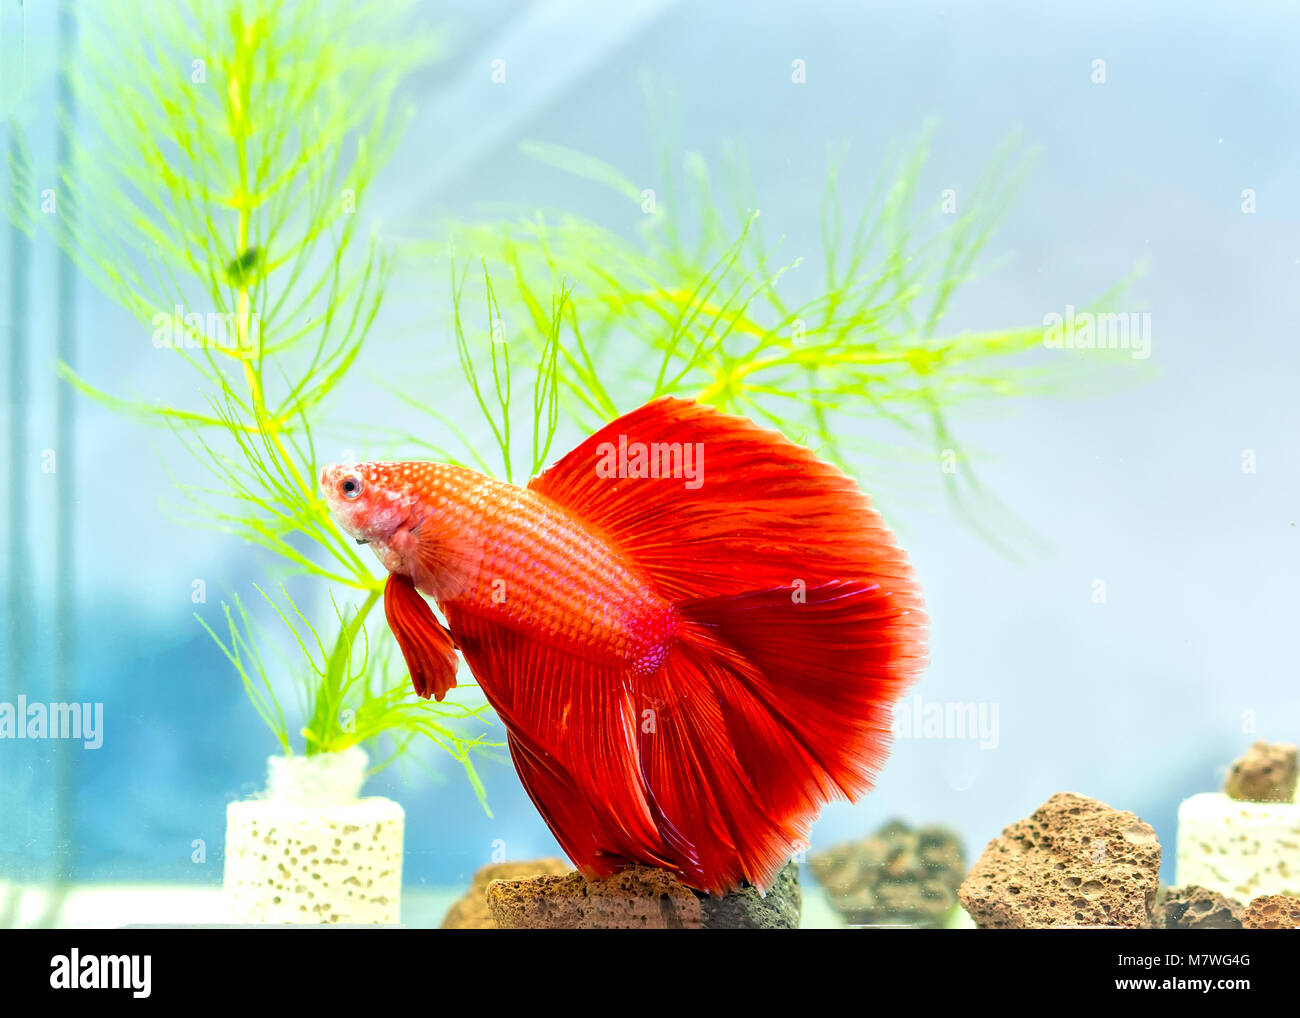 Fish Tank Cut Out Stock Photos & Fish Tank Cut Out Stock Images - Alamy